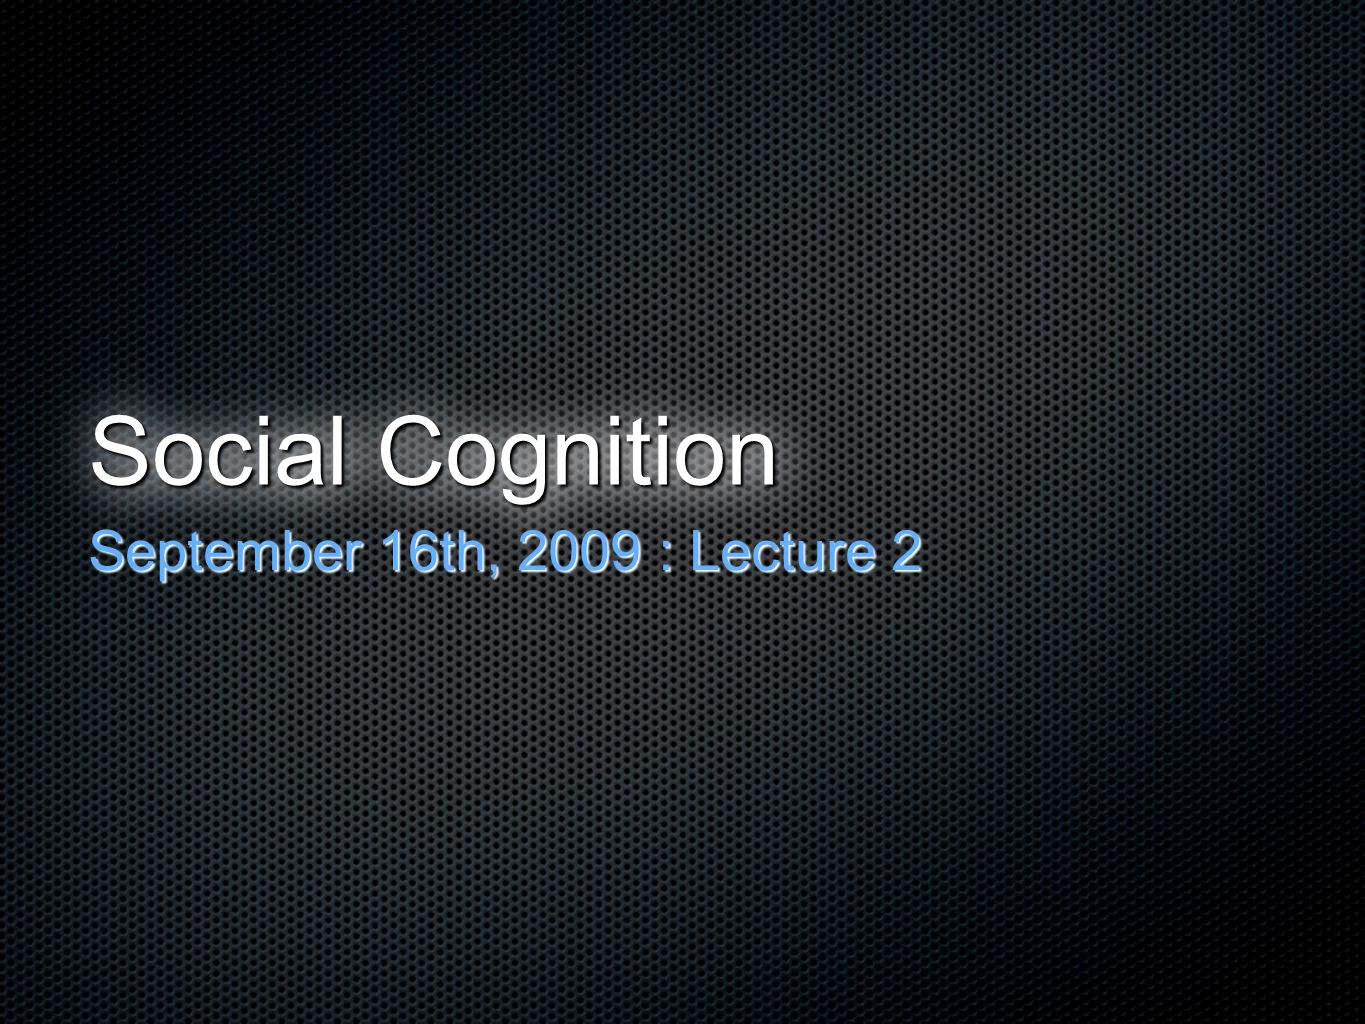 Social Cognition September 16th, 2009 : Lecture 2